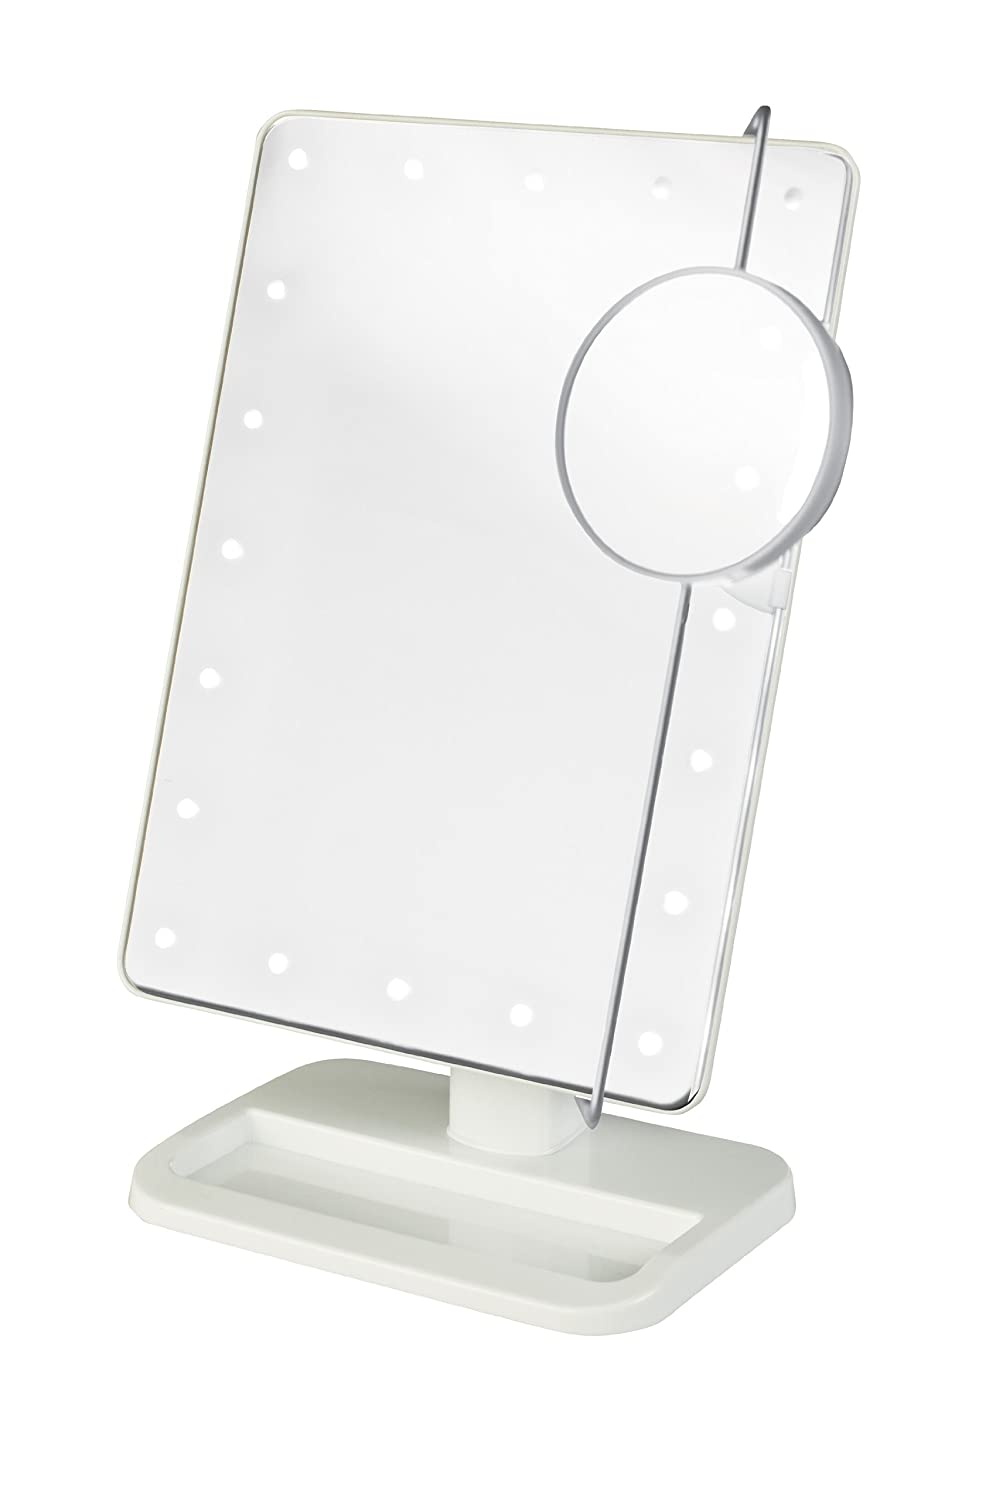 Jerdon JS811W 8 By 11 Rectangular Led Lighted Vanity Mirror With 10x Magnification Spot Mirror, White Finish